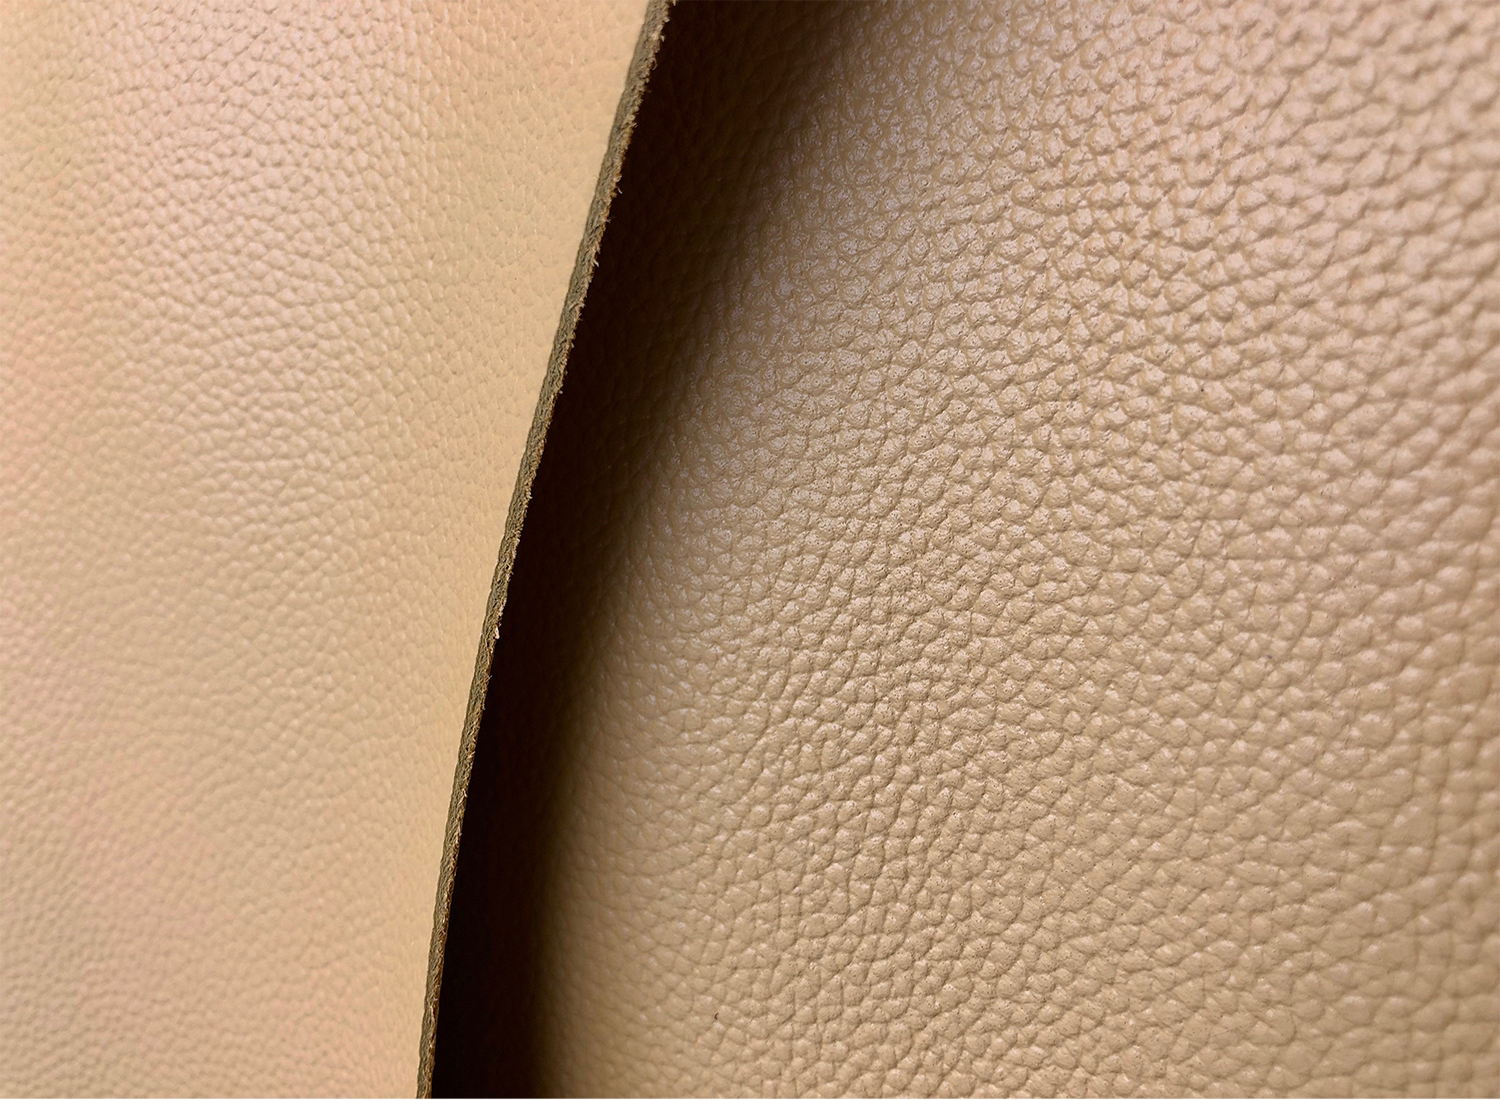 LEATHER - Committed to the highest quality materials, we have invented of a new kind of leather for the Buwood handbag.